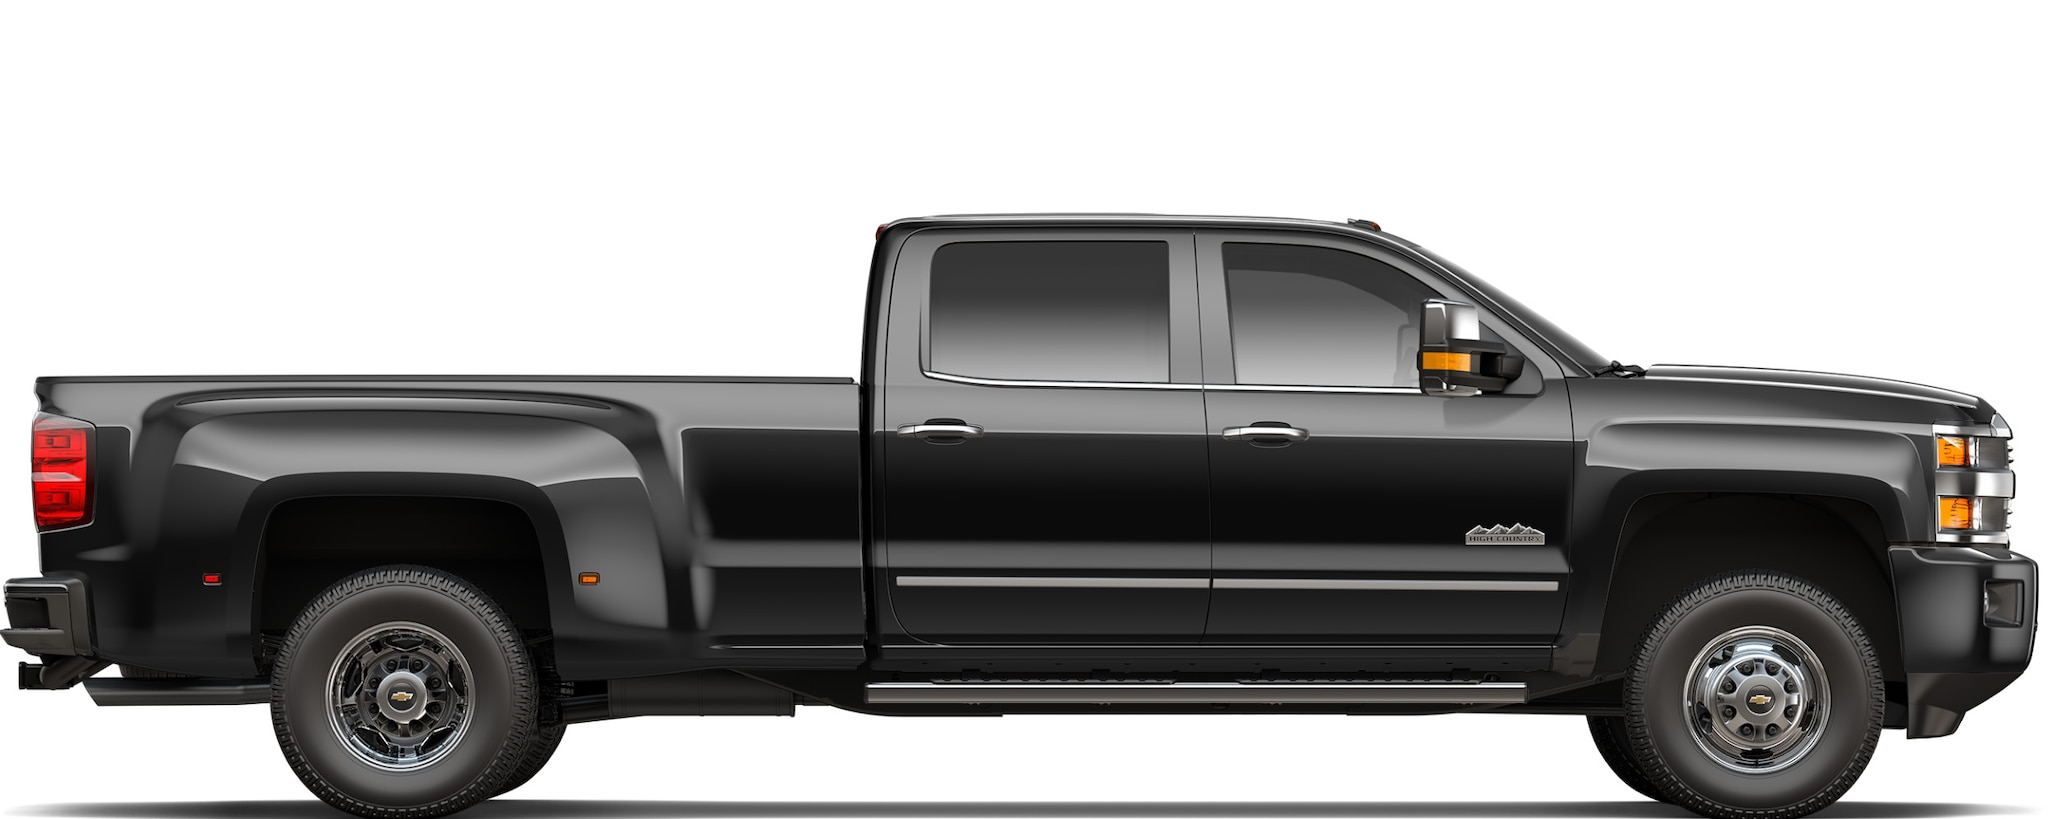 silverado 3500hd chasis camioneta comercial chevrolet. Black Bedroom Furniture Sets. Home Design Ideas